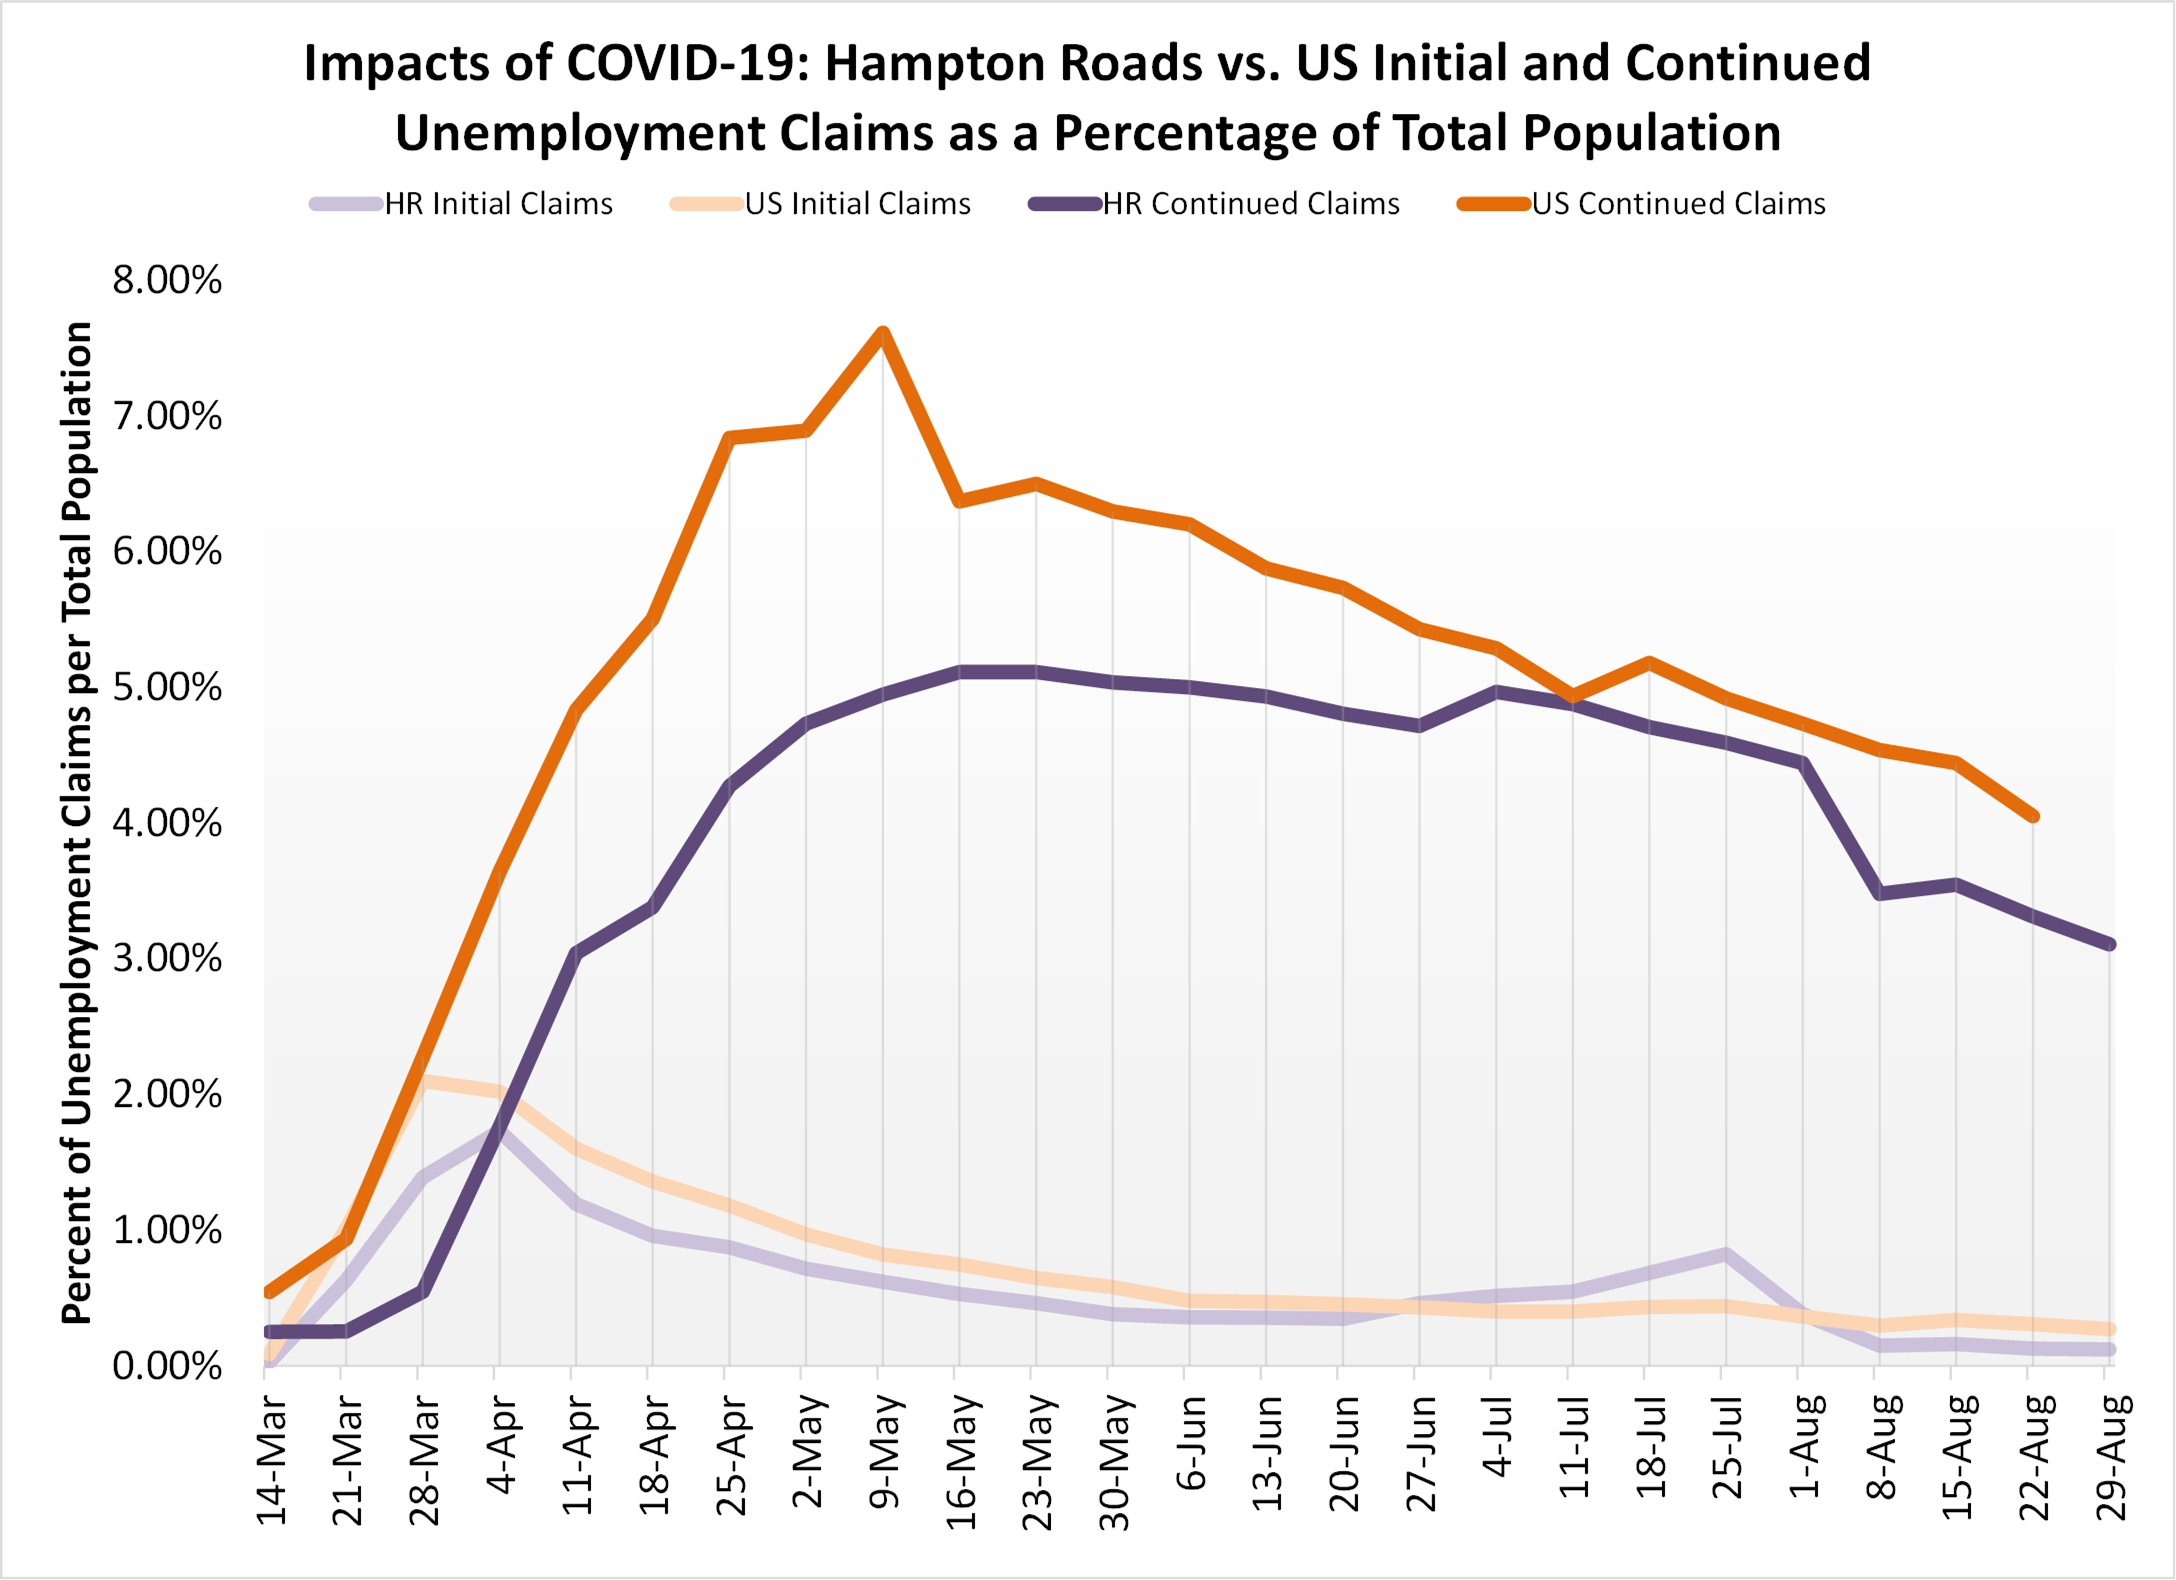 Line chart depicting Hampton Roads vs. US Initial and Continued Unemployment Claims as a Percentage of Total Population